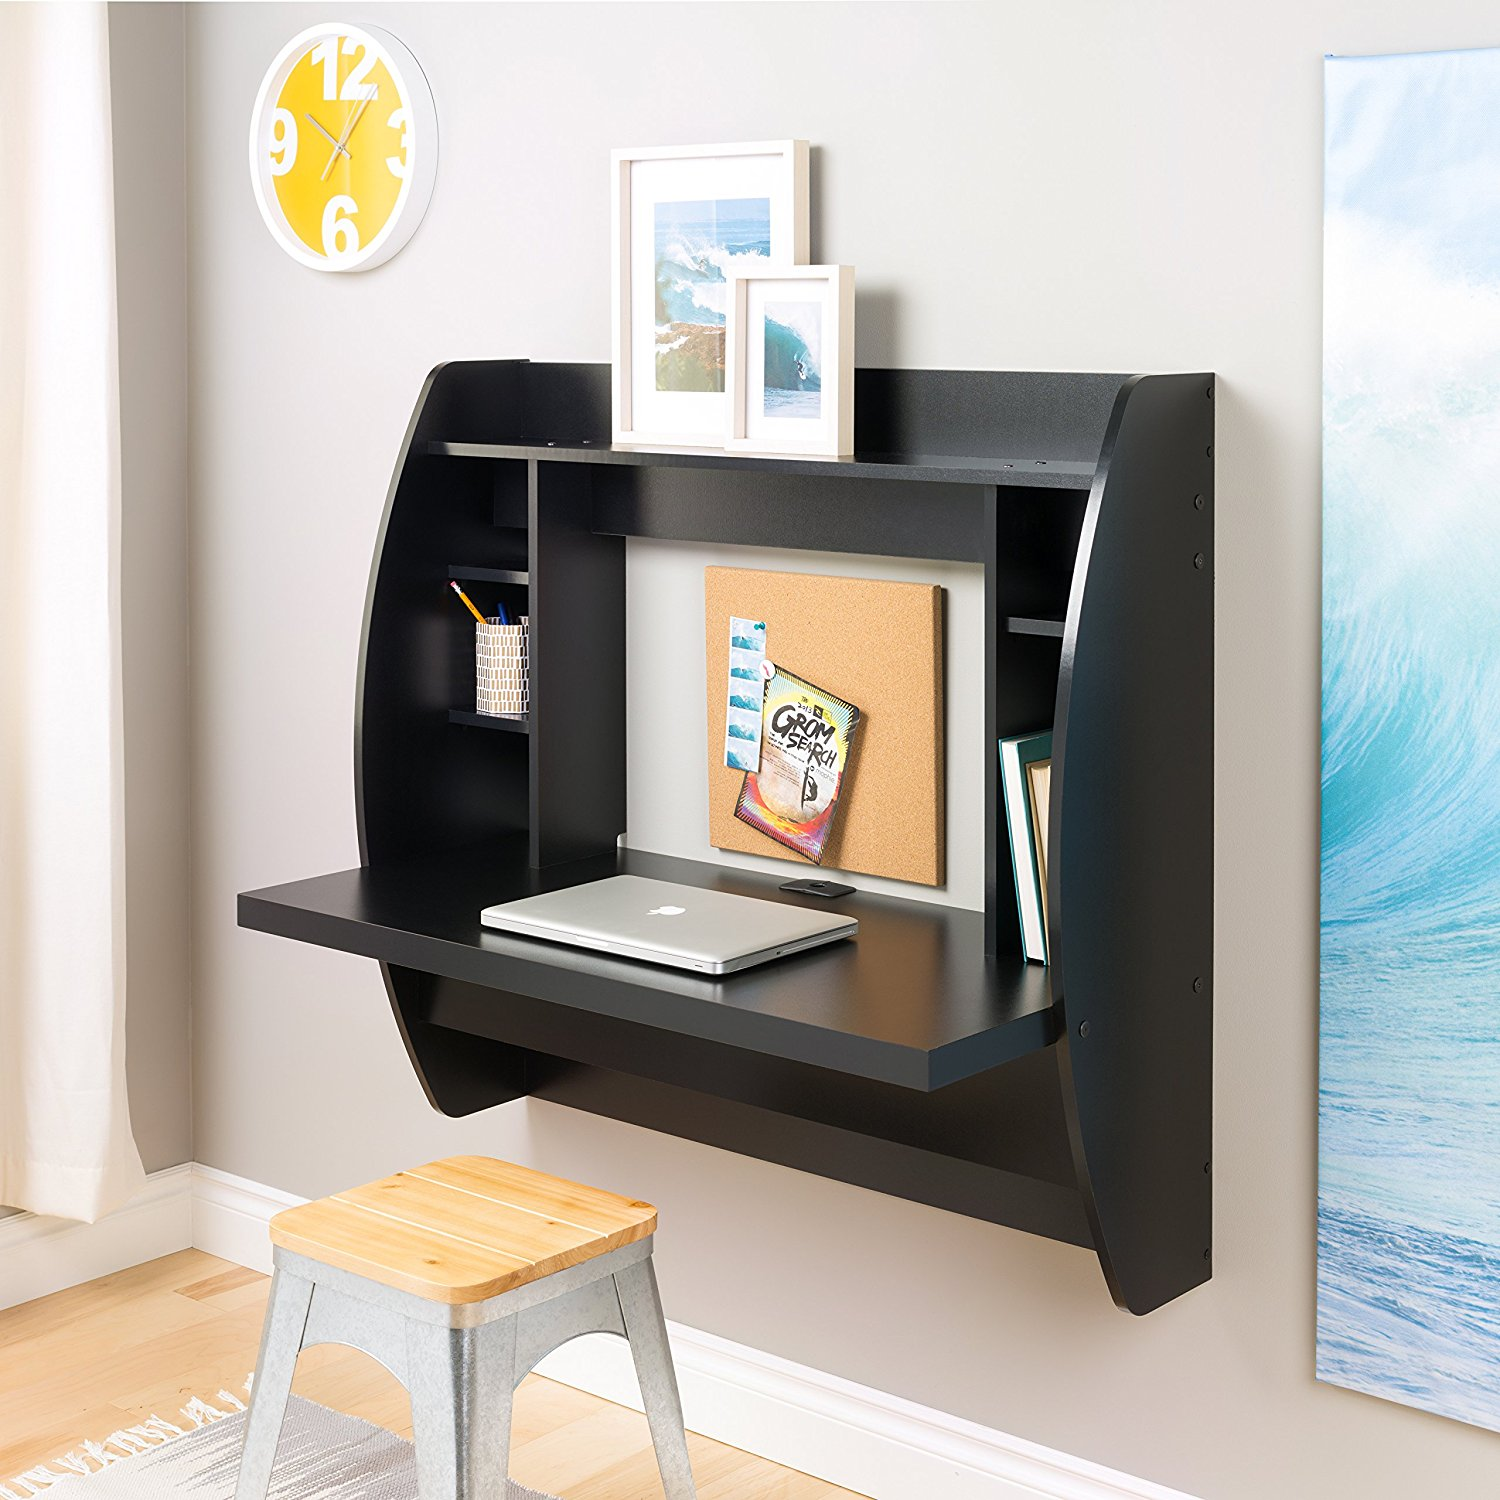 Uenjoy Floating Wall Mounted Office Computer Desk Home Office Table w/Storage,Black